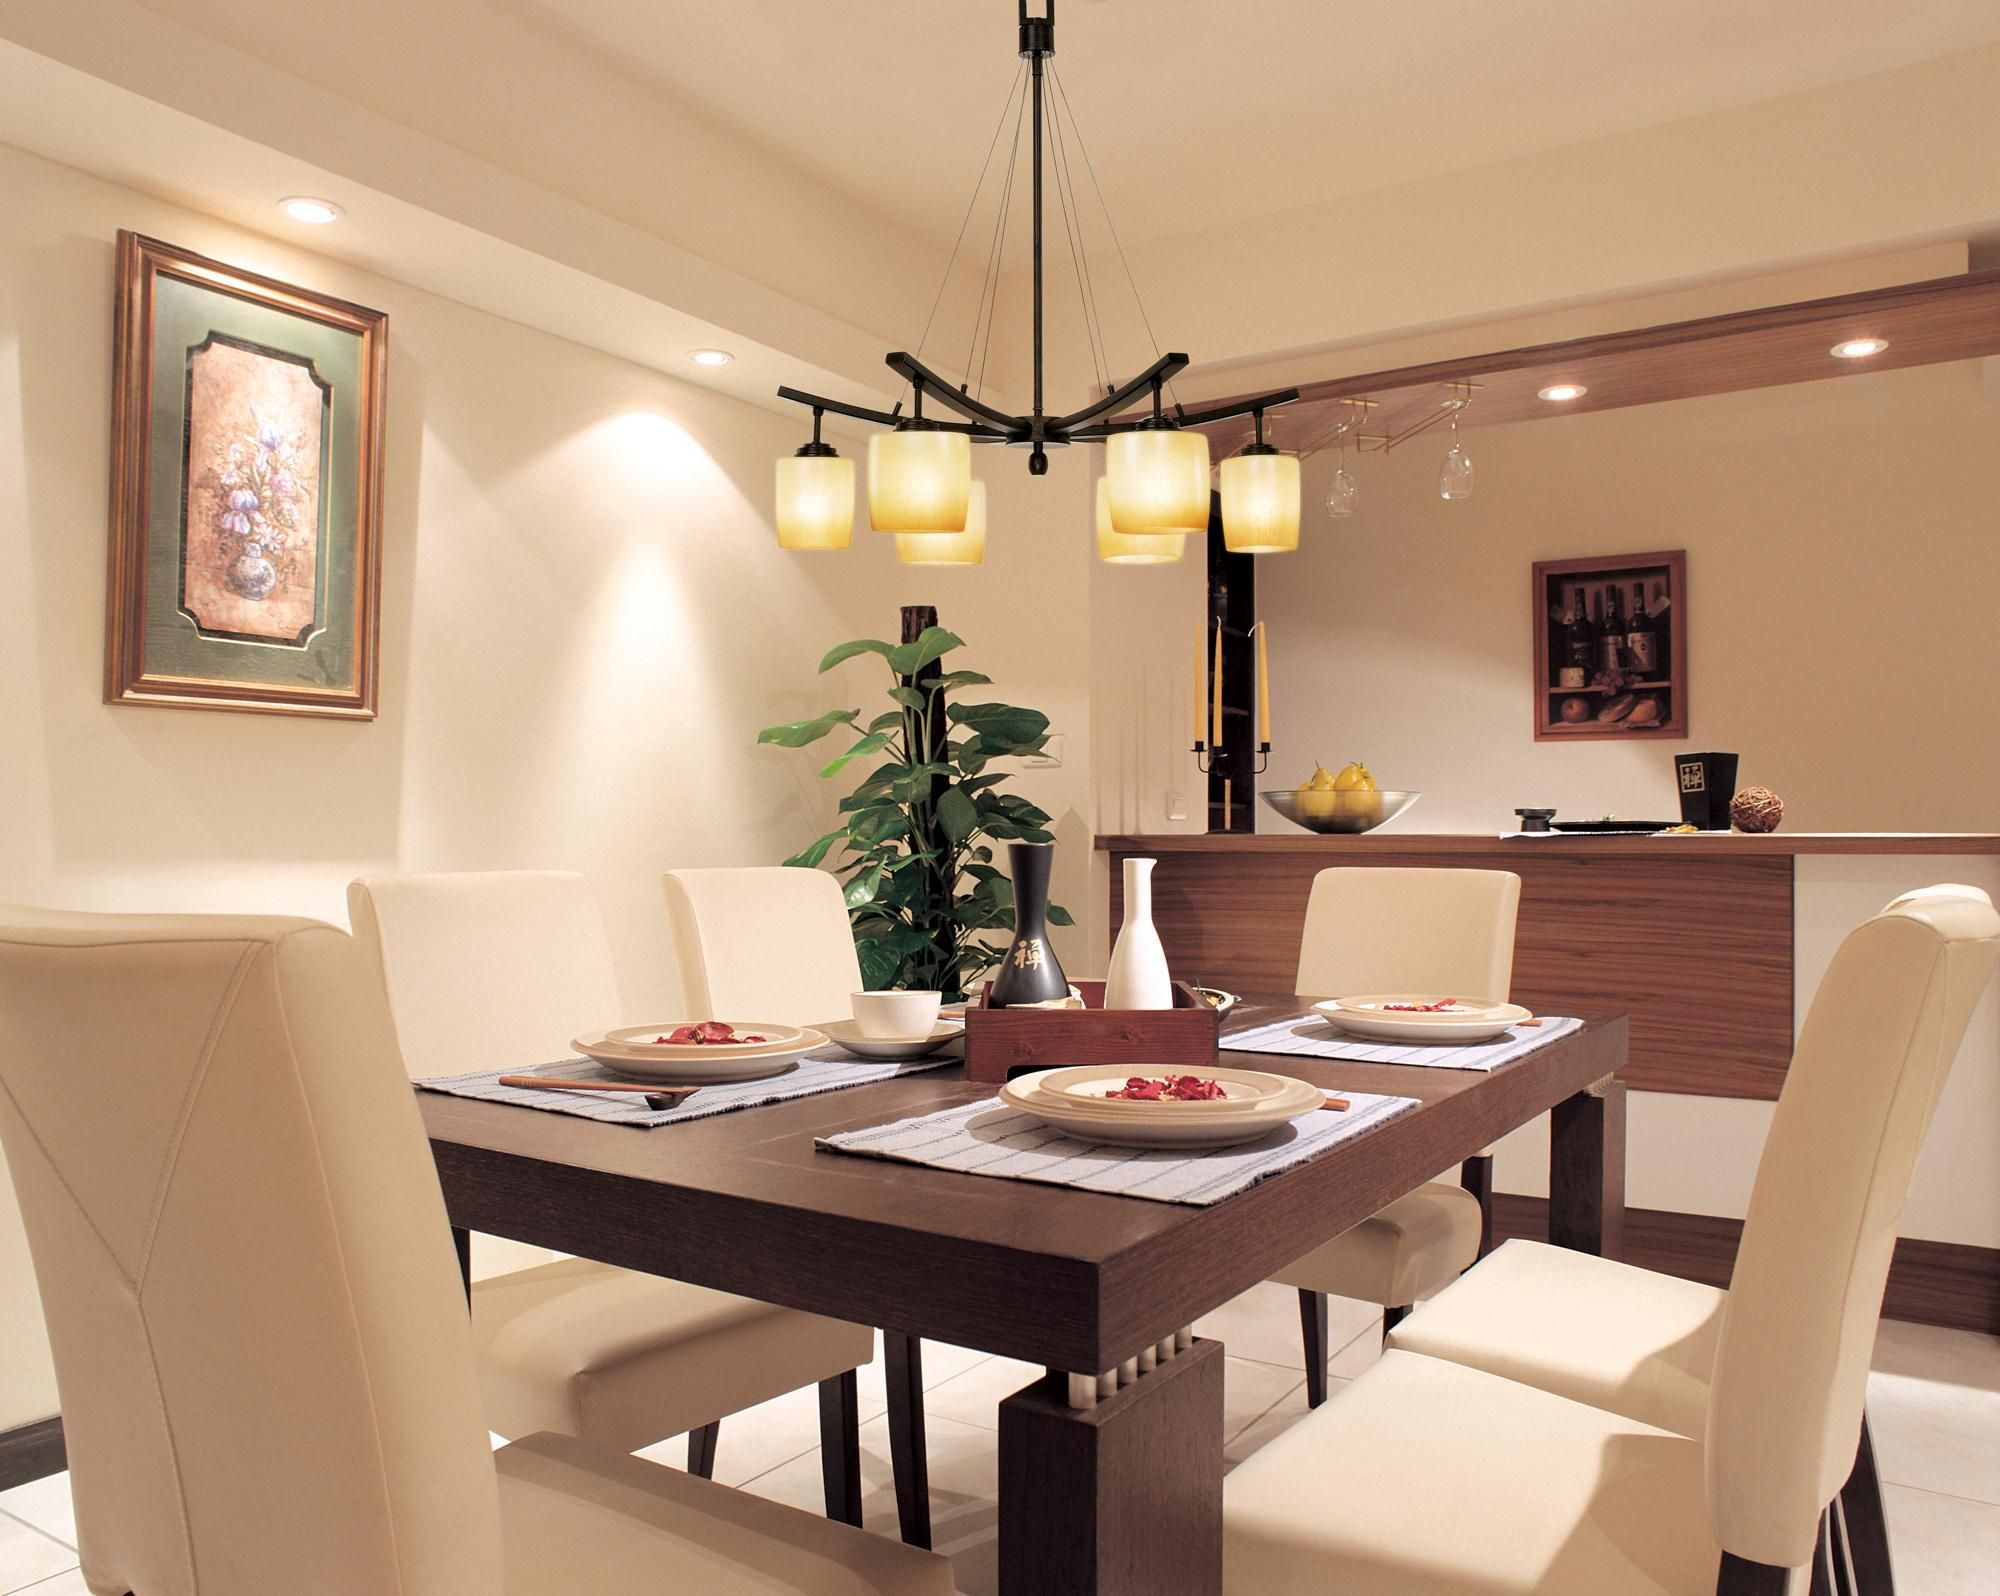 Light fixtures for kitchen dining area design ideas 2017 2018 light fixtures for kitchen dining area arubaitofo Choice Image